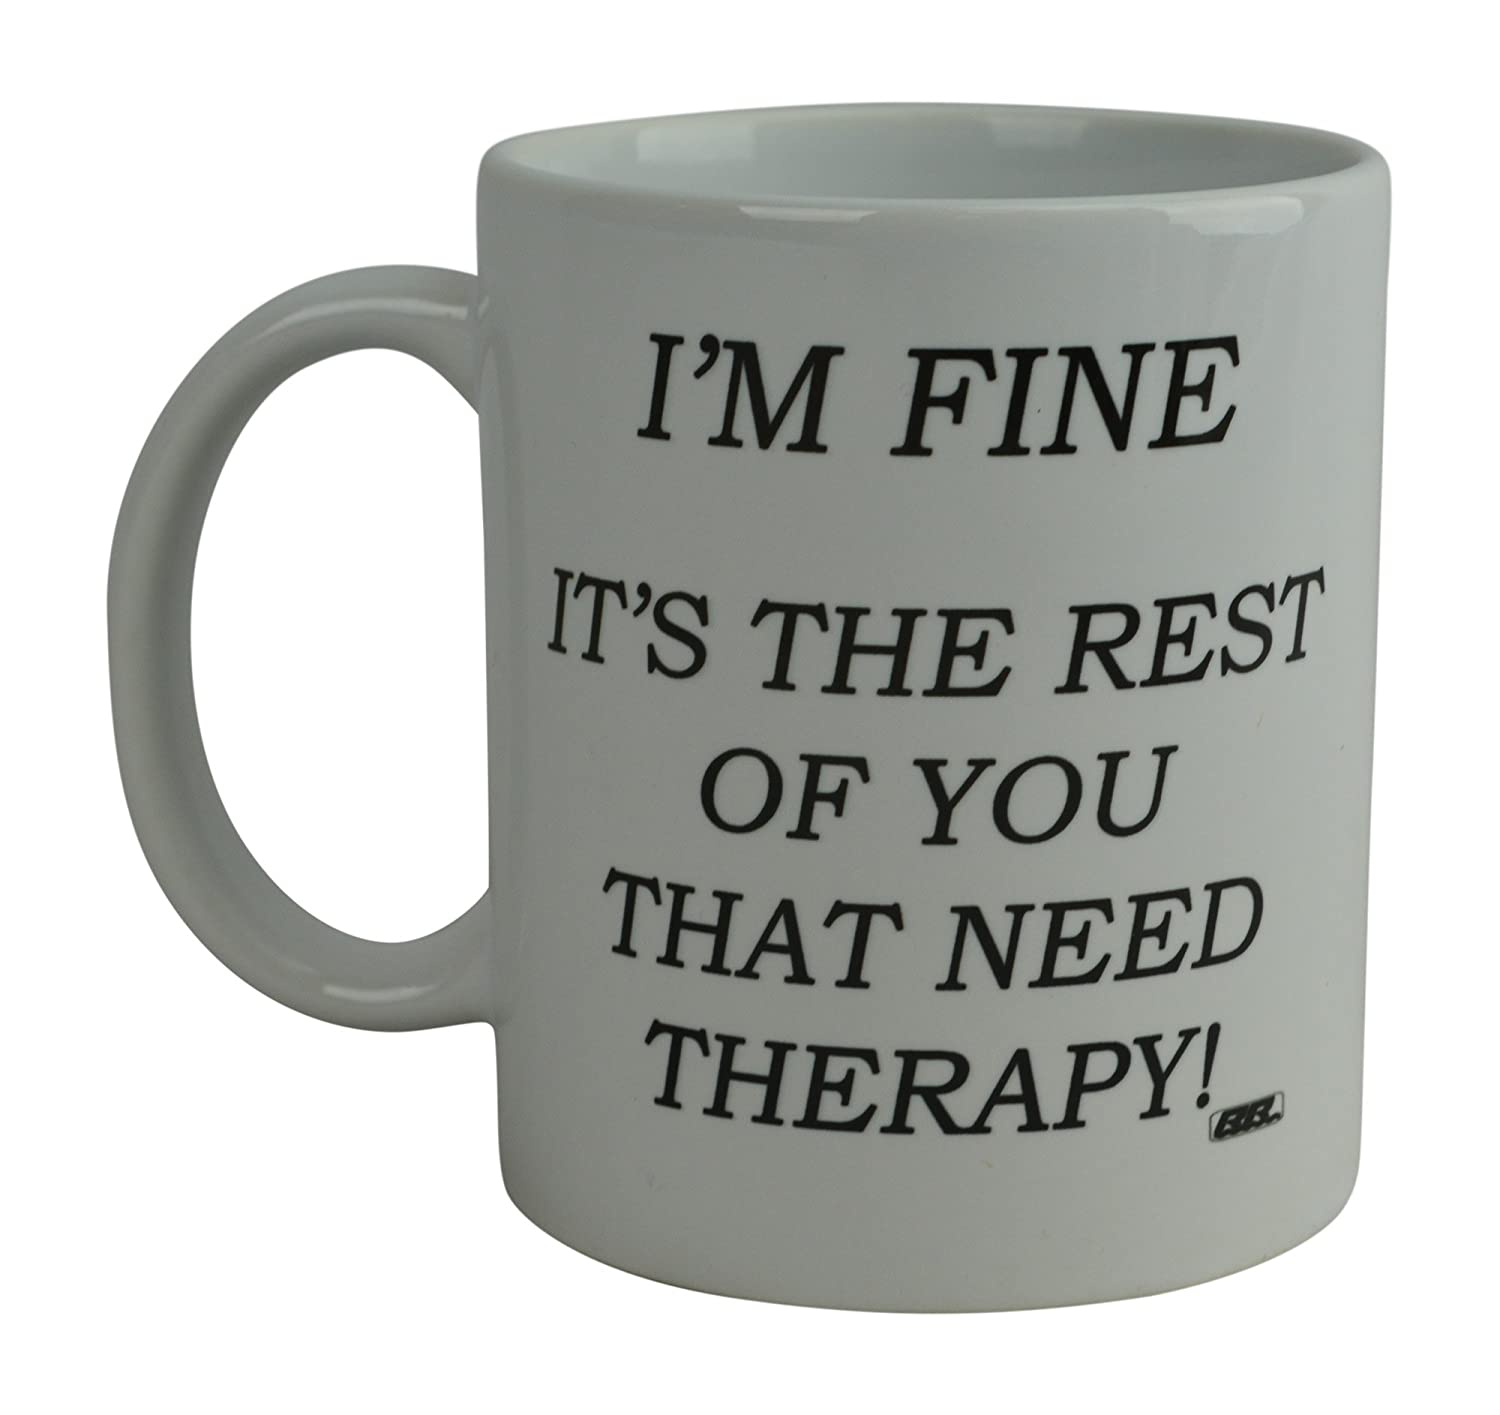 Therapy Rogue River Funny Coffee Mug IM Fine Its The Rest Of You That Need Therapy Novelty Cup Great Gift Idea For Office Party Employee Boss Coworkers